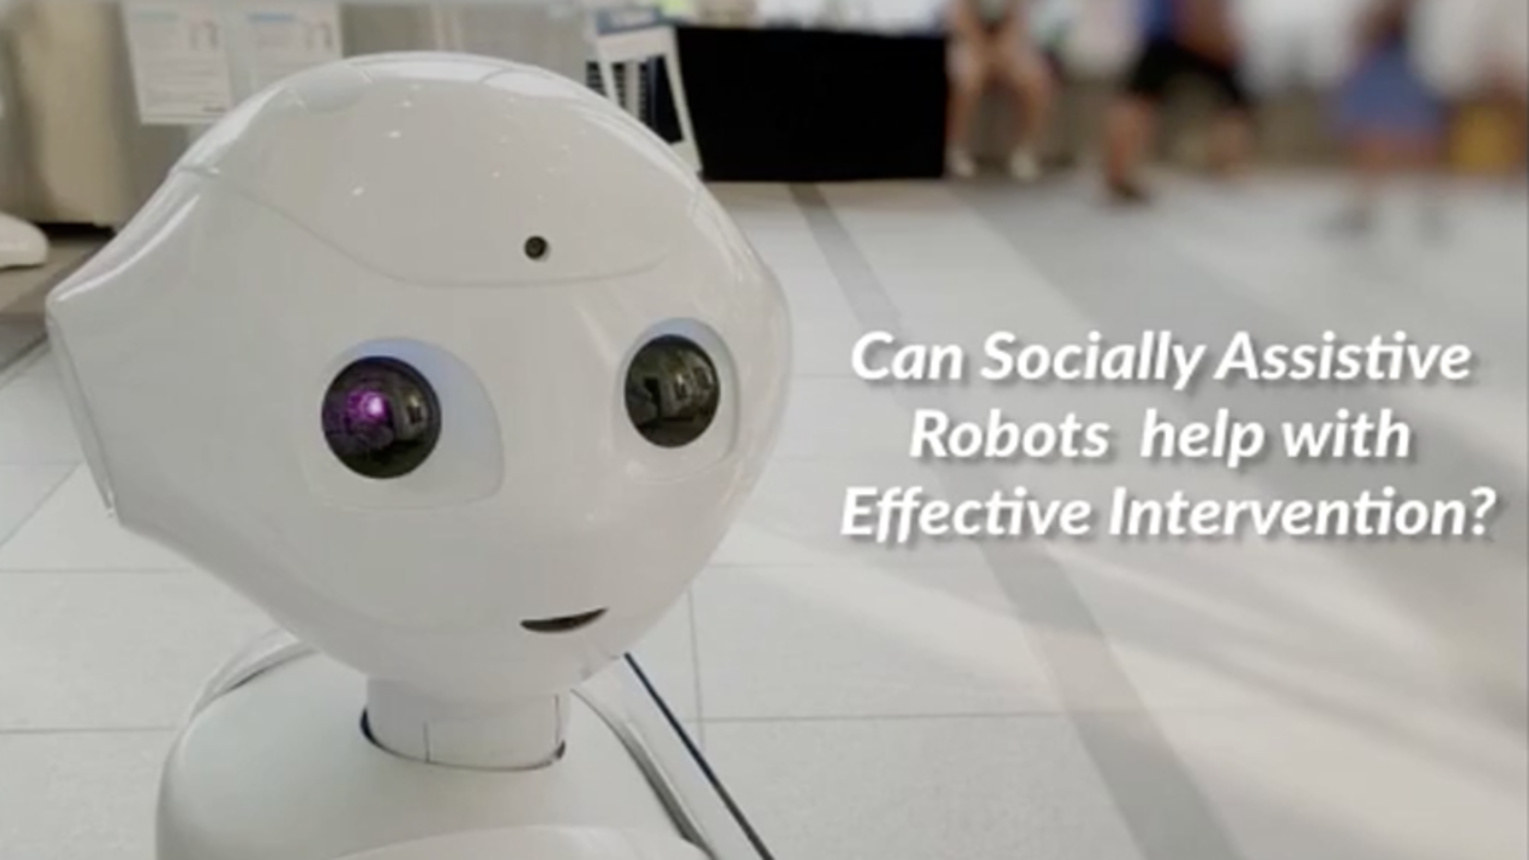 Teaching assistance through social robotics for ASD